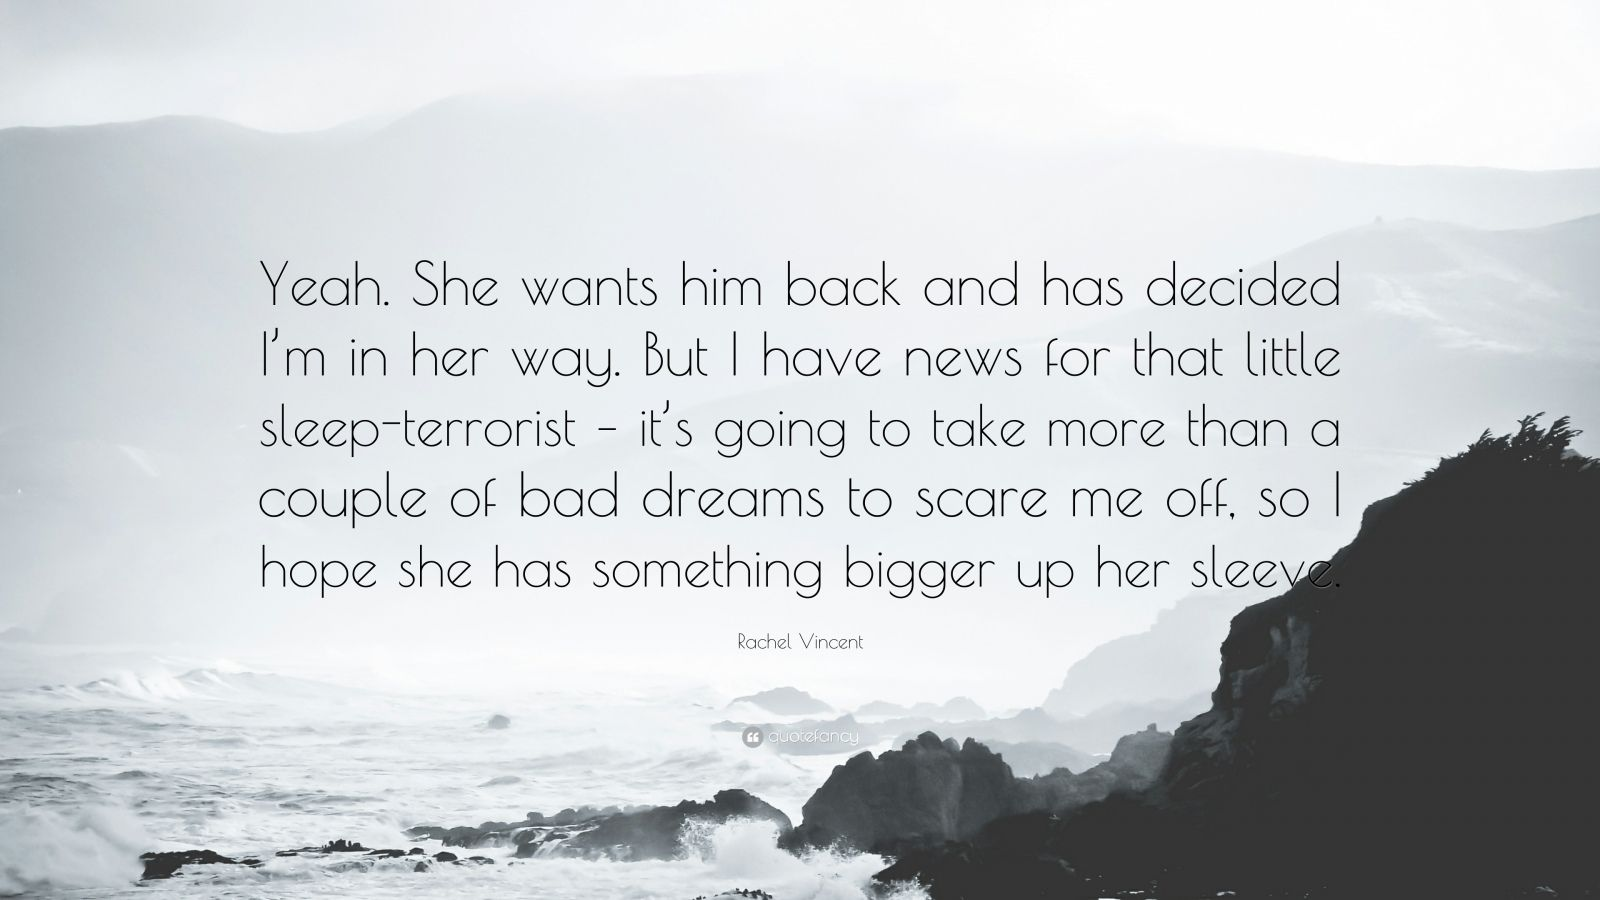 """Rachel Vincent Quote: """"Yeah. She wants him back and has decided I'm in her way. But I have news for that little sleep-terrorist – it's going to take more than a couple of bad dreams to scare me off, so I hope she has something bigger up her sleeve."""""""